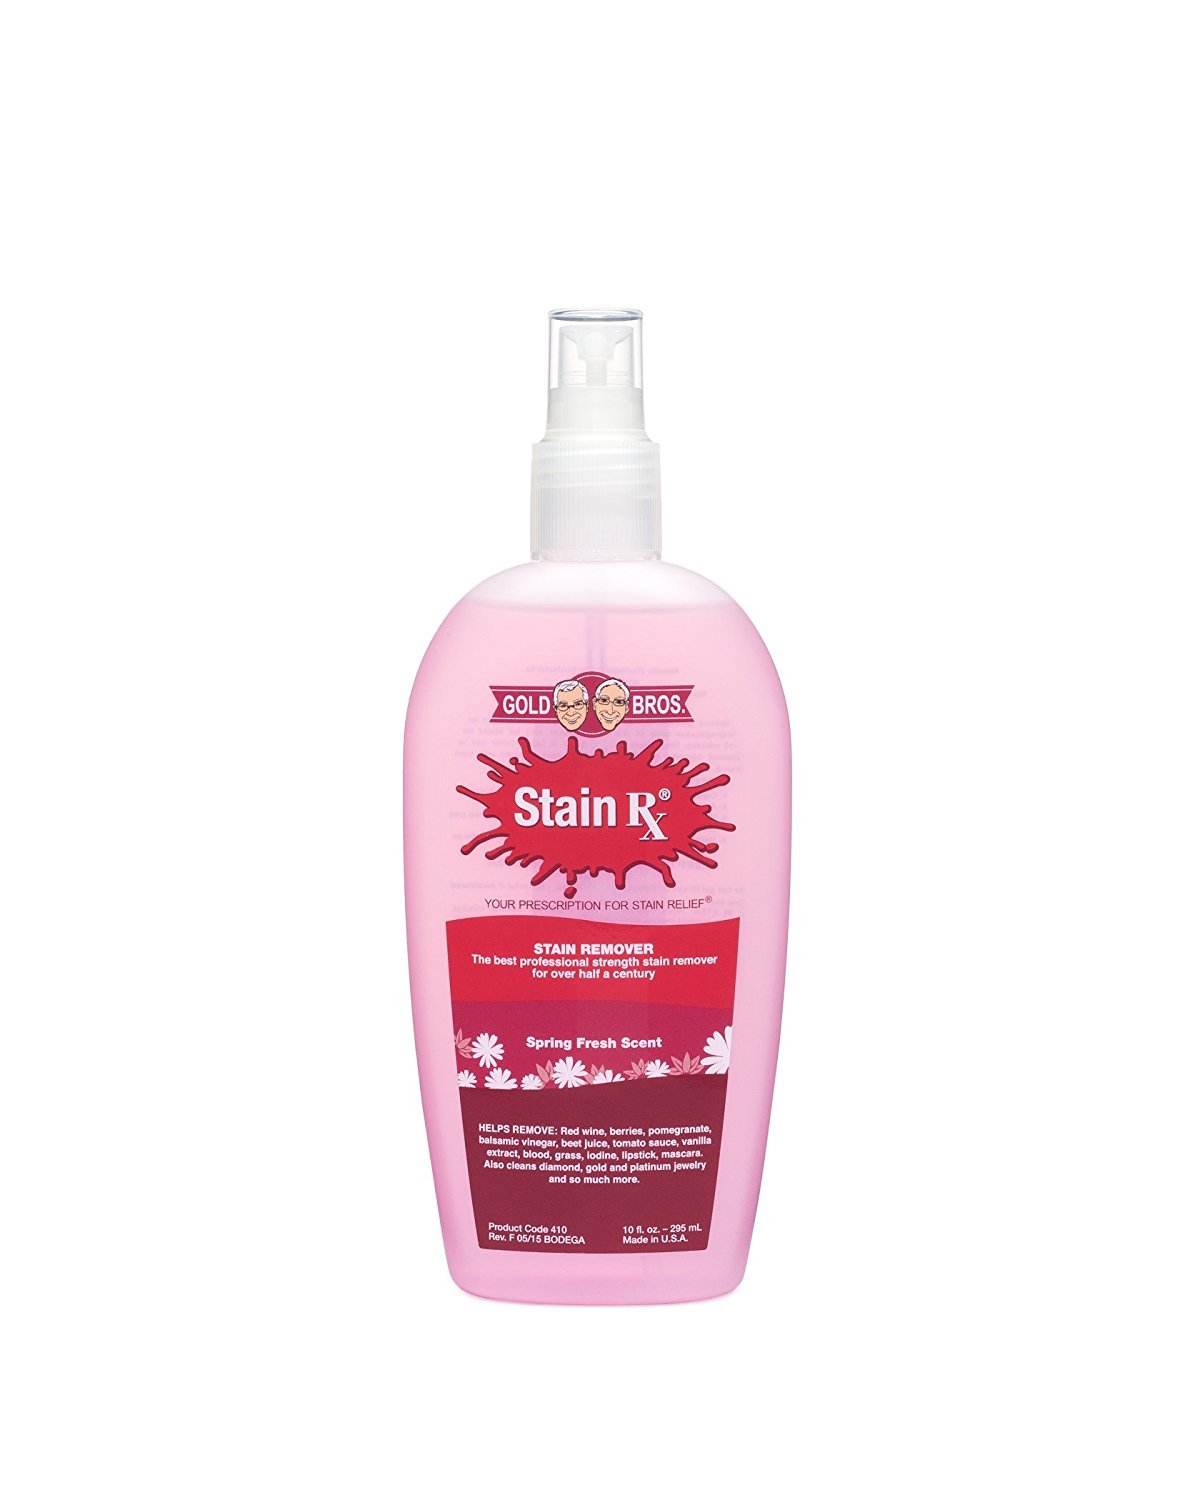 Stain Rx Spring Fresh Scent